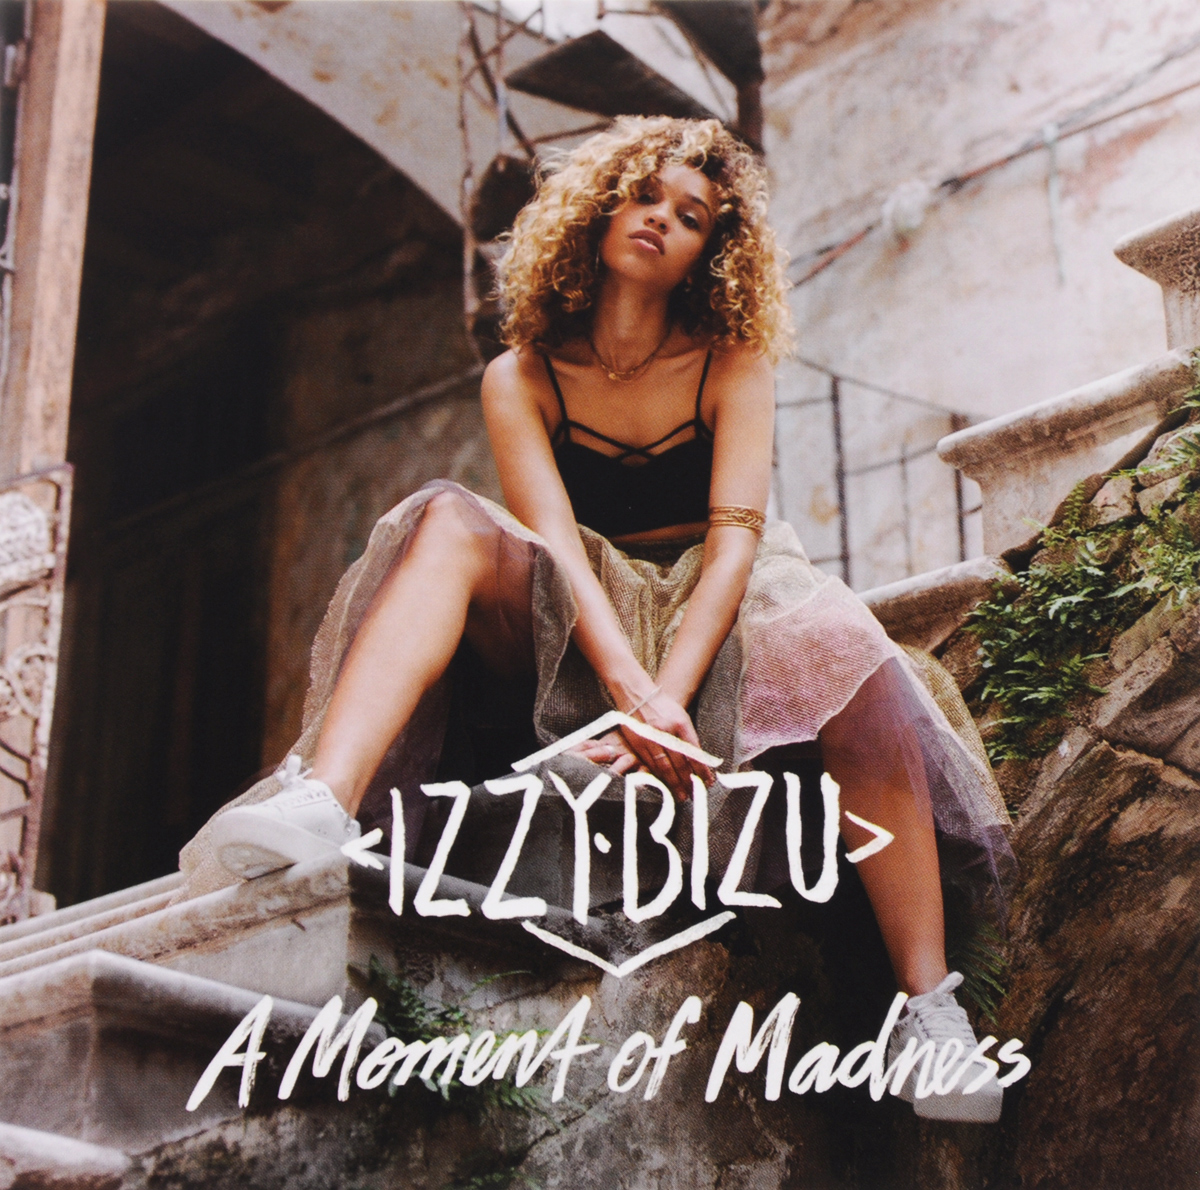 Izzy Bizu. A Moment Of Madness